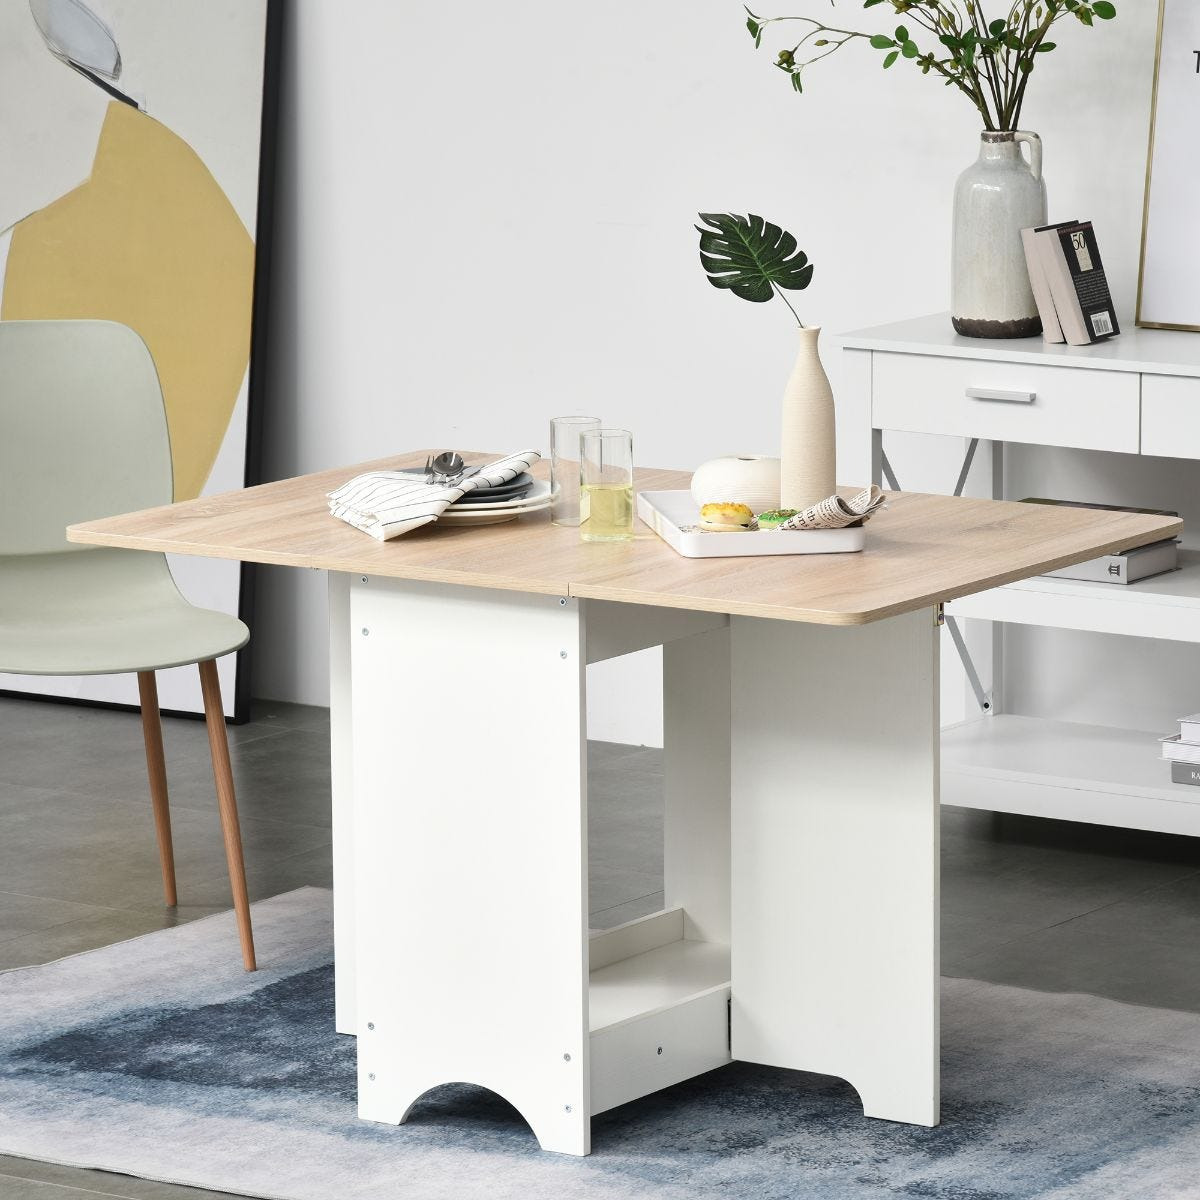 Four Seater Drop Leaf Folding Dining Table With Storage Shelf White And Oak Effect